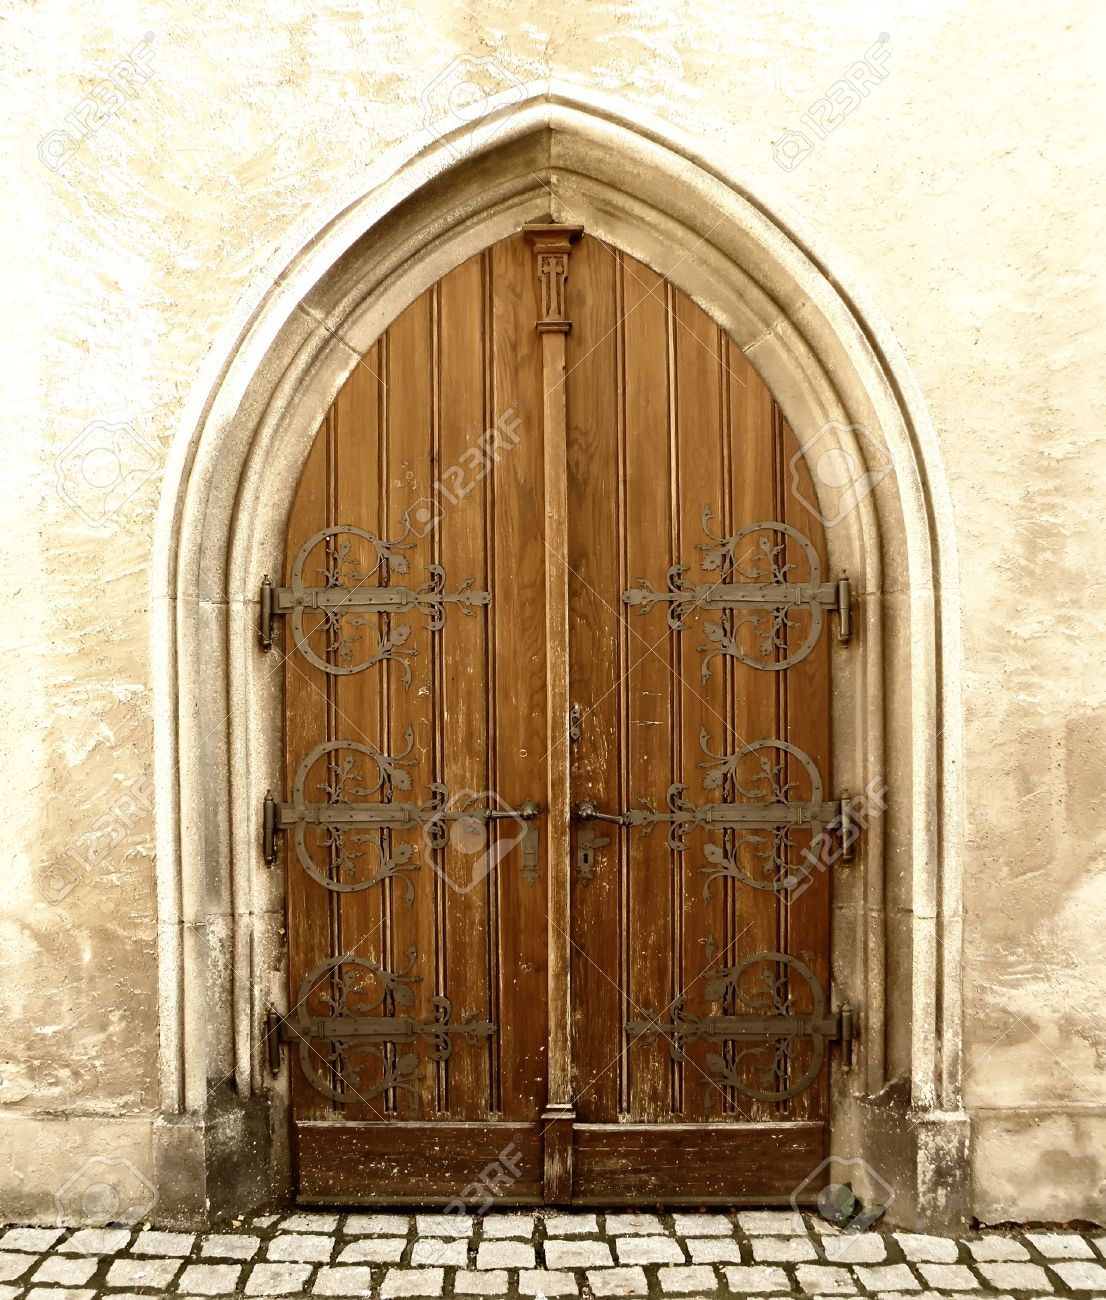 detail of an old church or castle door Stock Photo - 7992276 & Detail Of An Old Church Or Castle Door Stock Photo Picture And ... Pezcame.Com